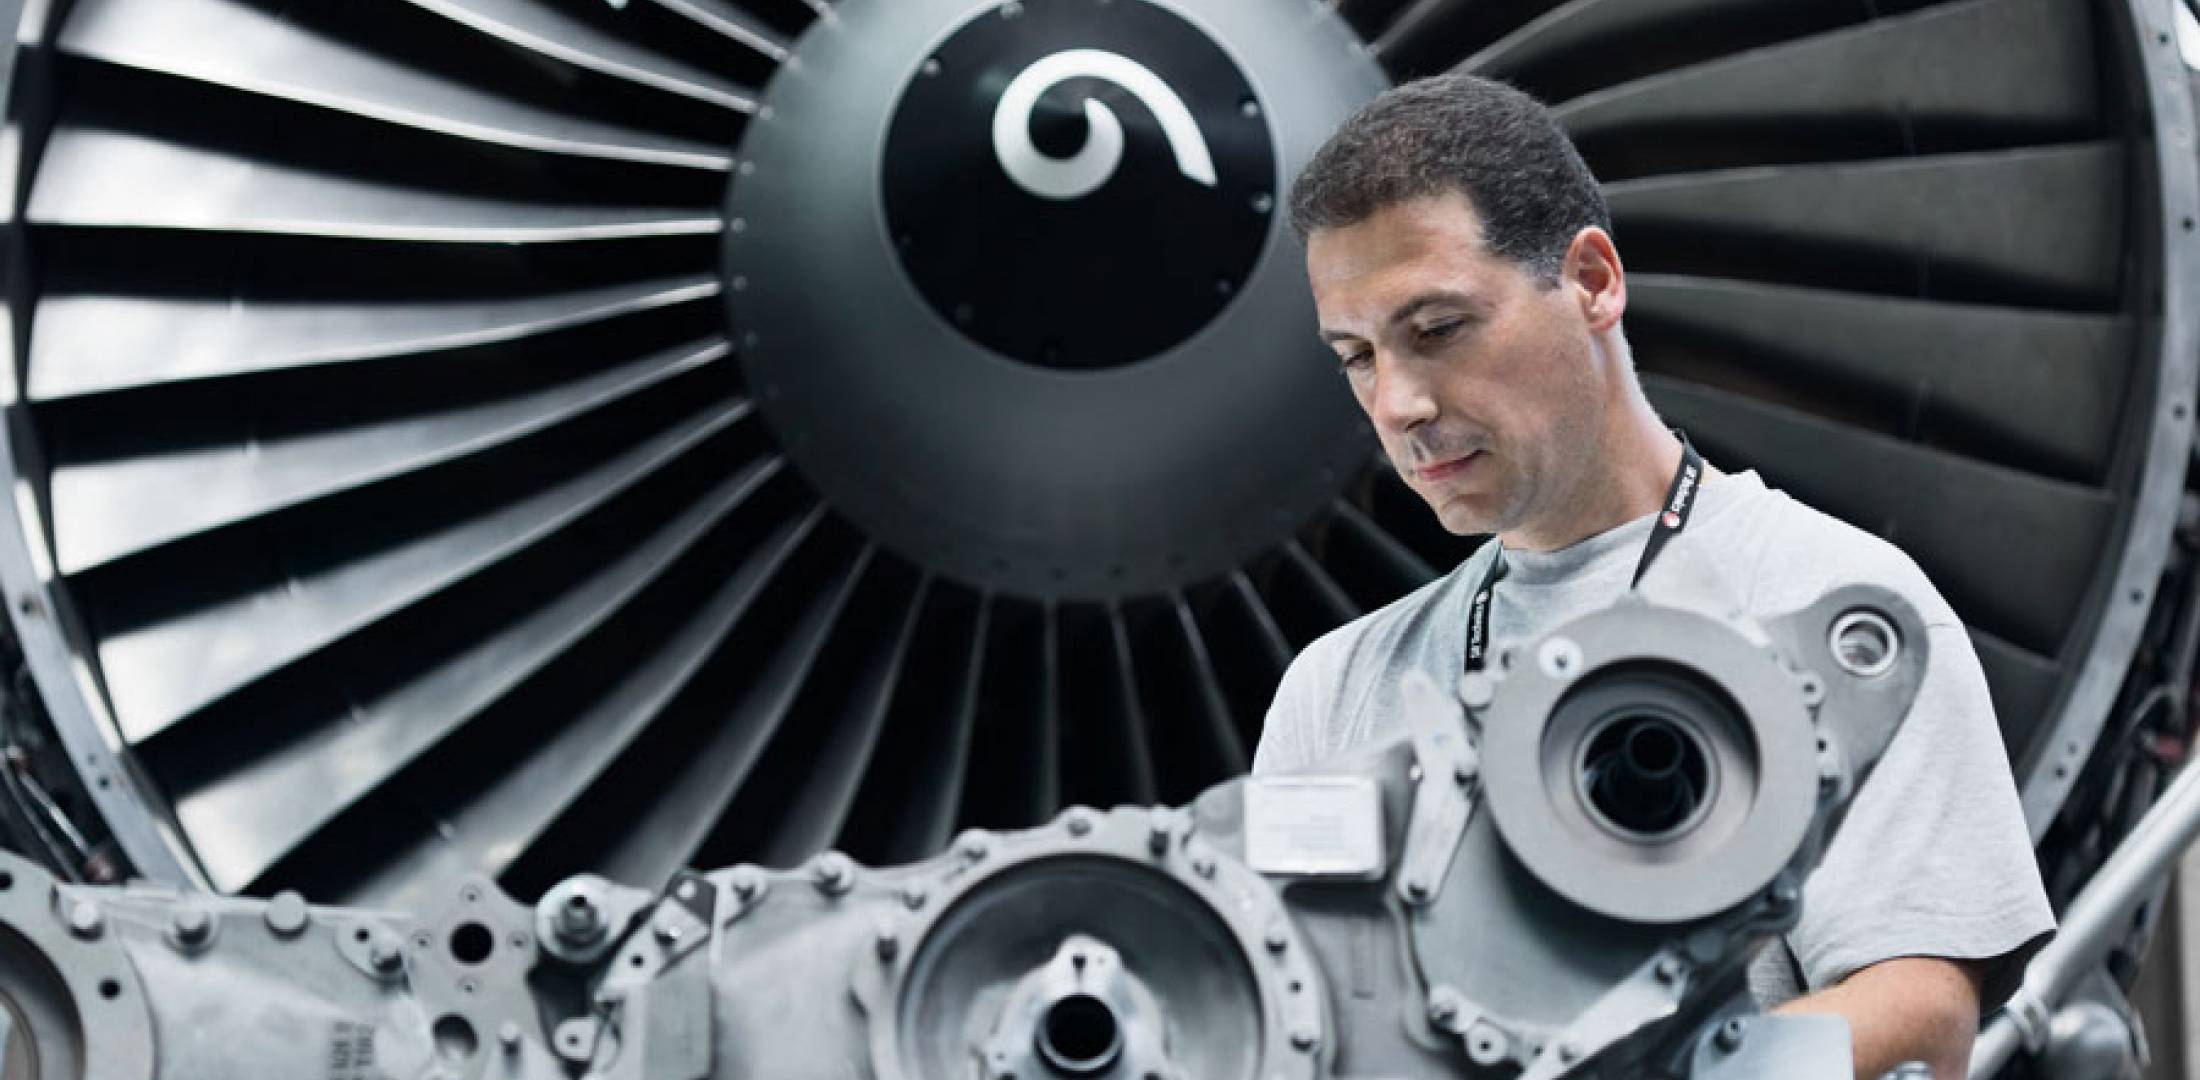 SR Technics, which performs light, base and heavy maintenance checks on Airbus and Boeing airplanes is expanding to develop a comprehensive global operational footprint, designed to place the company close to its customers. It sees Asia Pacific as the region with the greatest integrated component services customer demand increase.